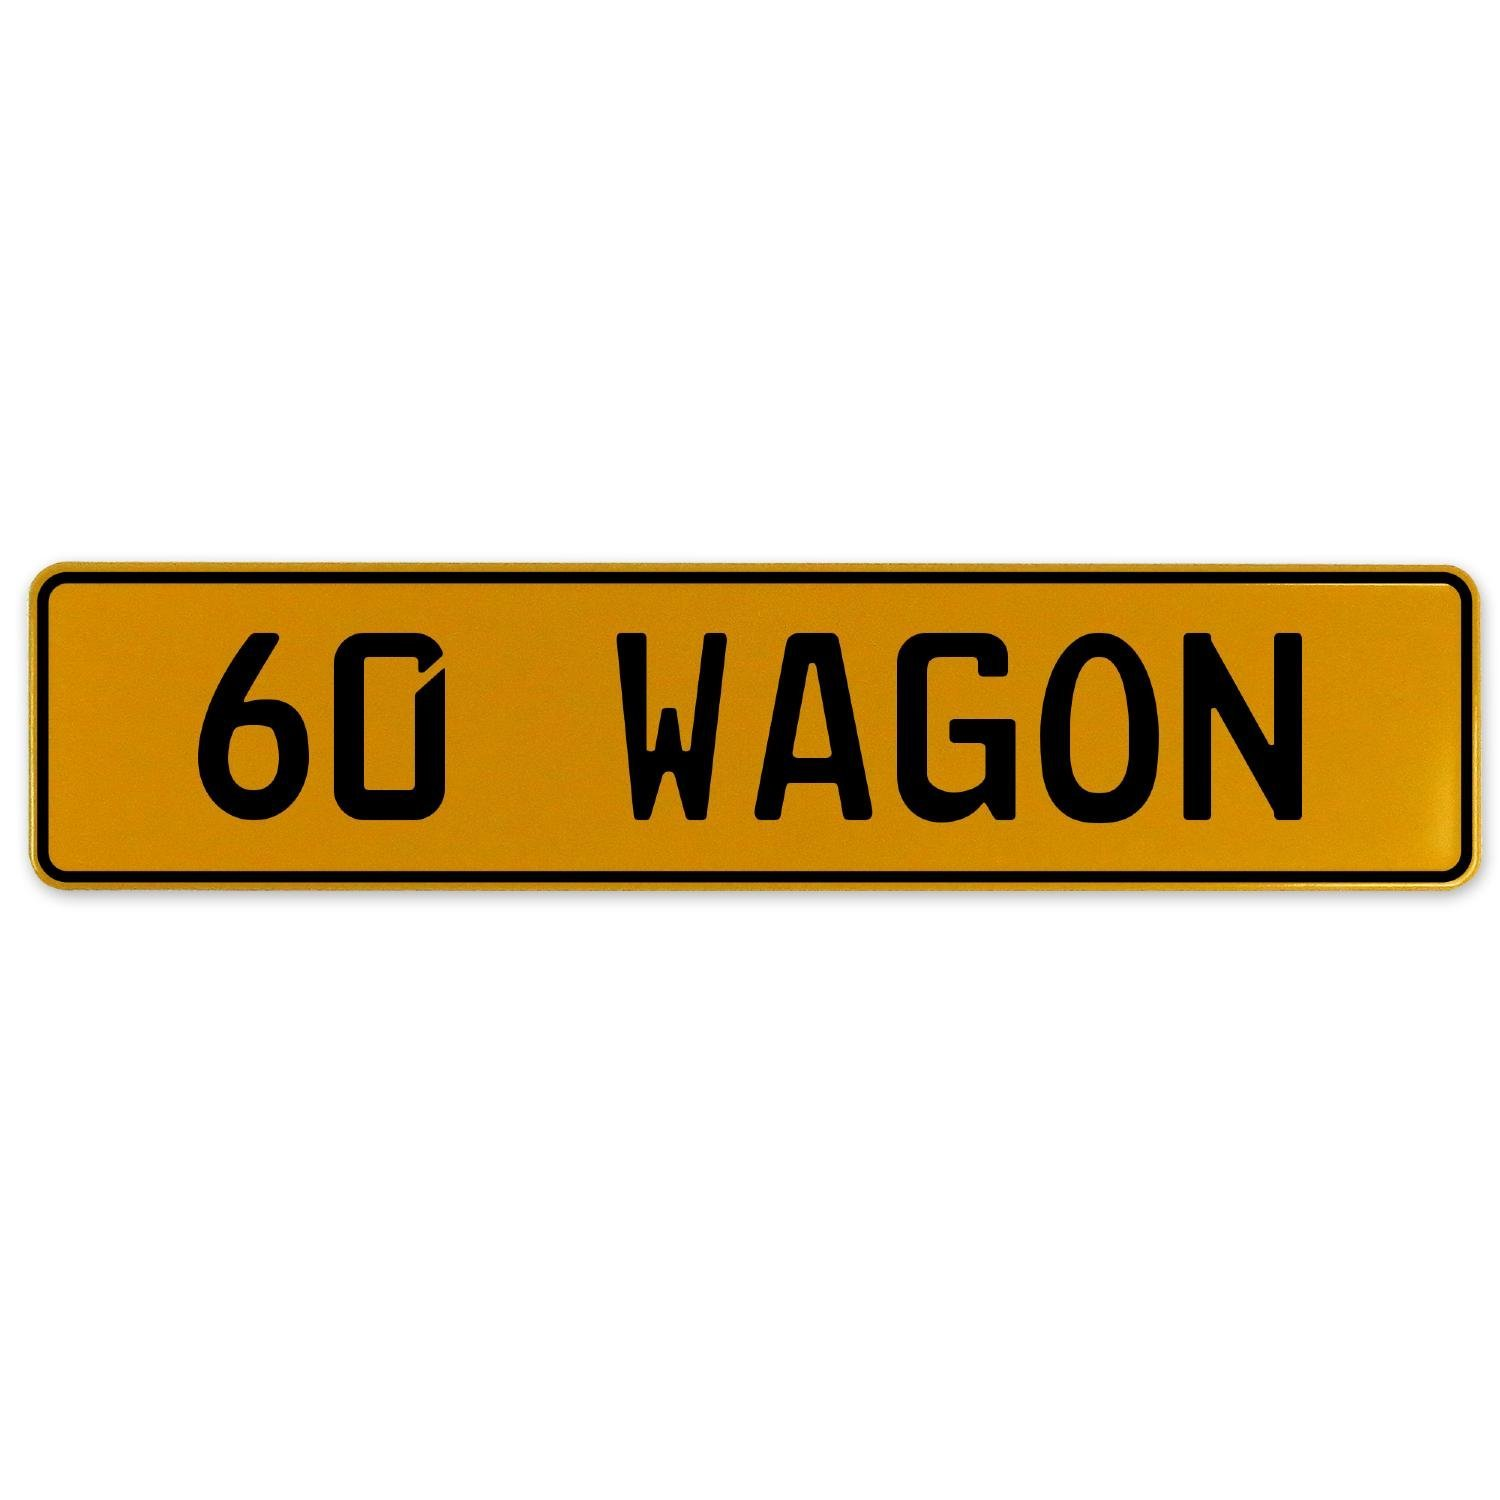 Vintage Parts 563271 60 Wagon Yellow Stamped Aluminum European Plate